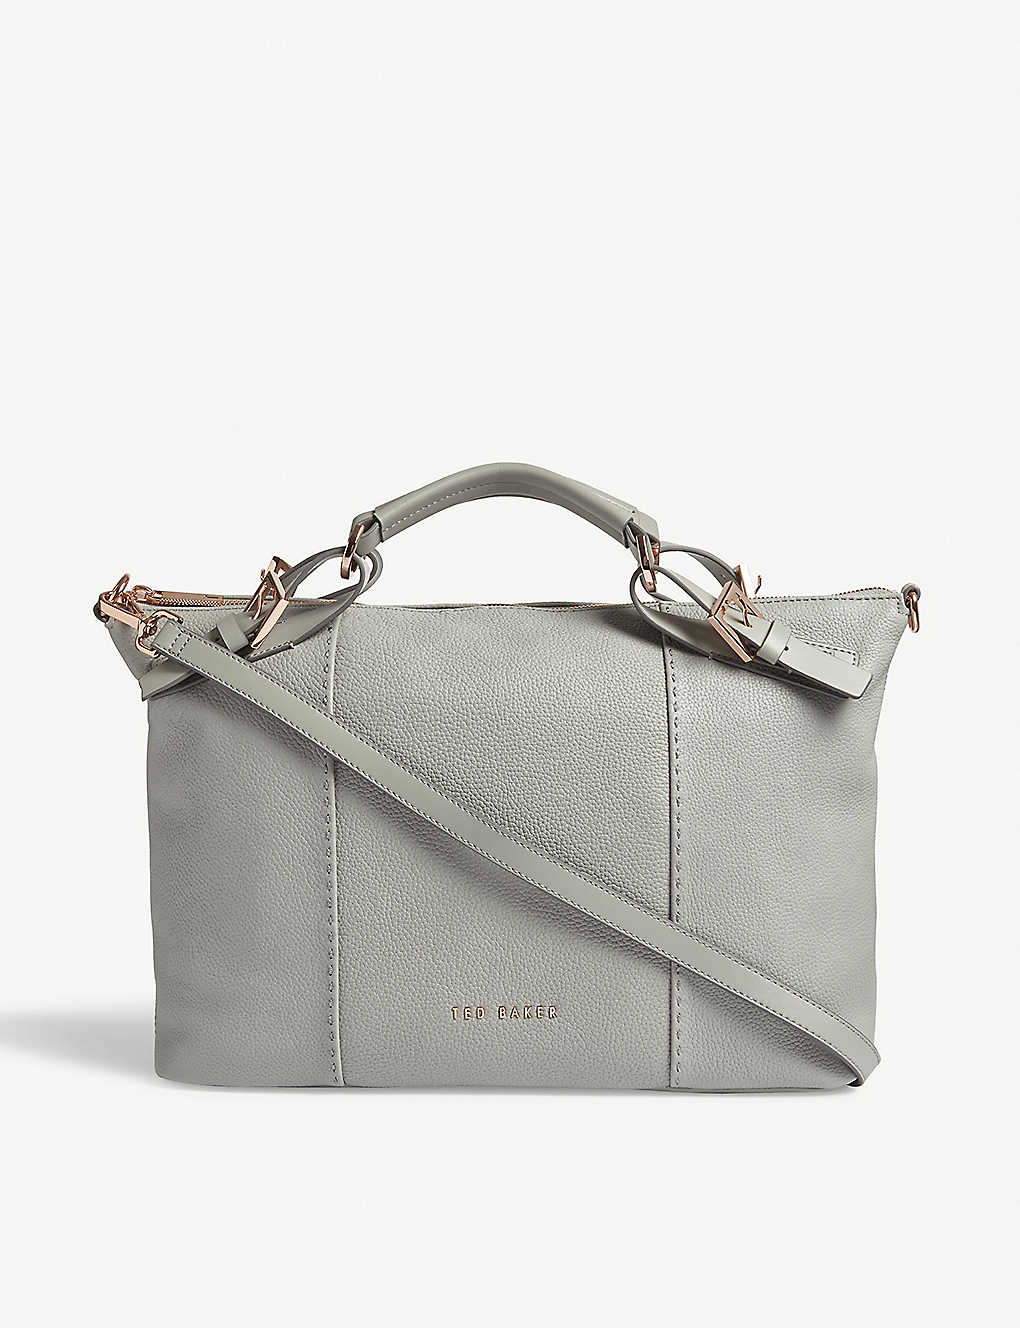 c25412be0189 TED BAKER - SALBEE bridle handle leather tote